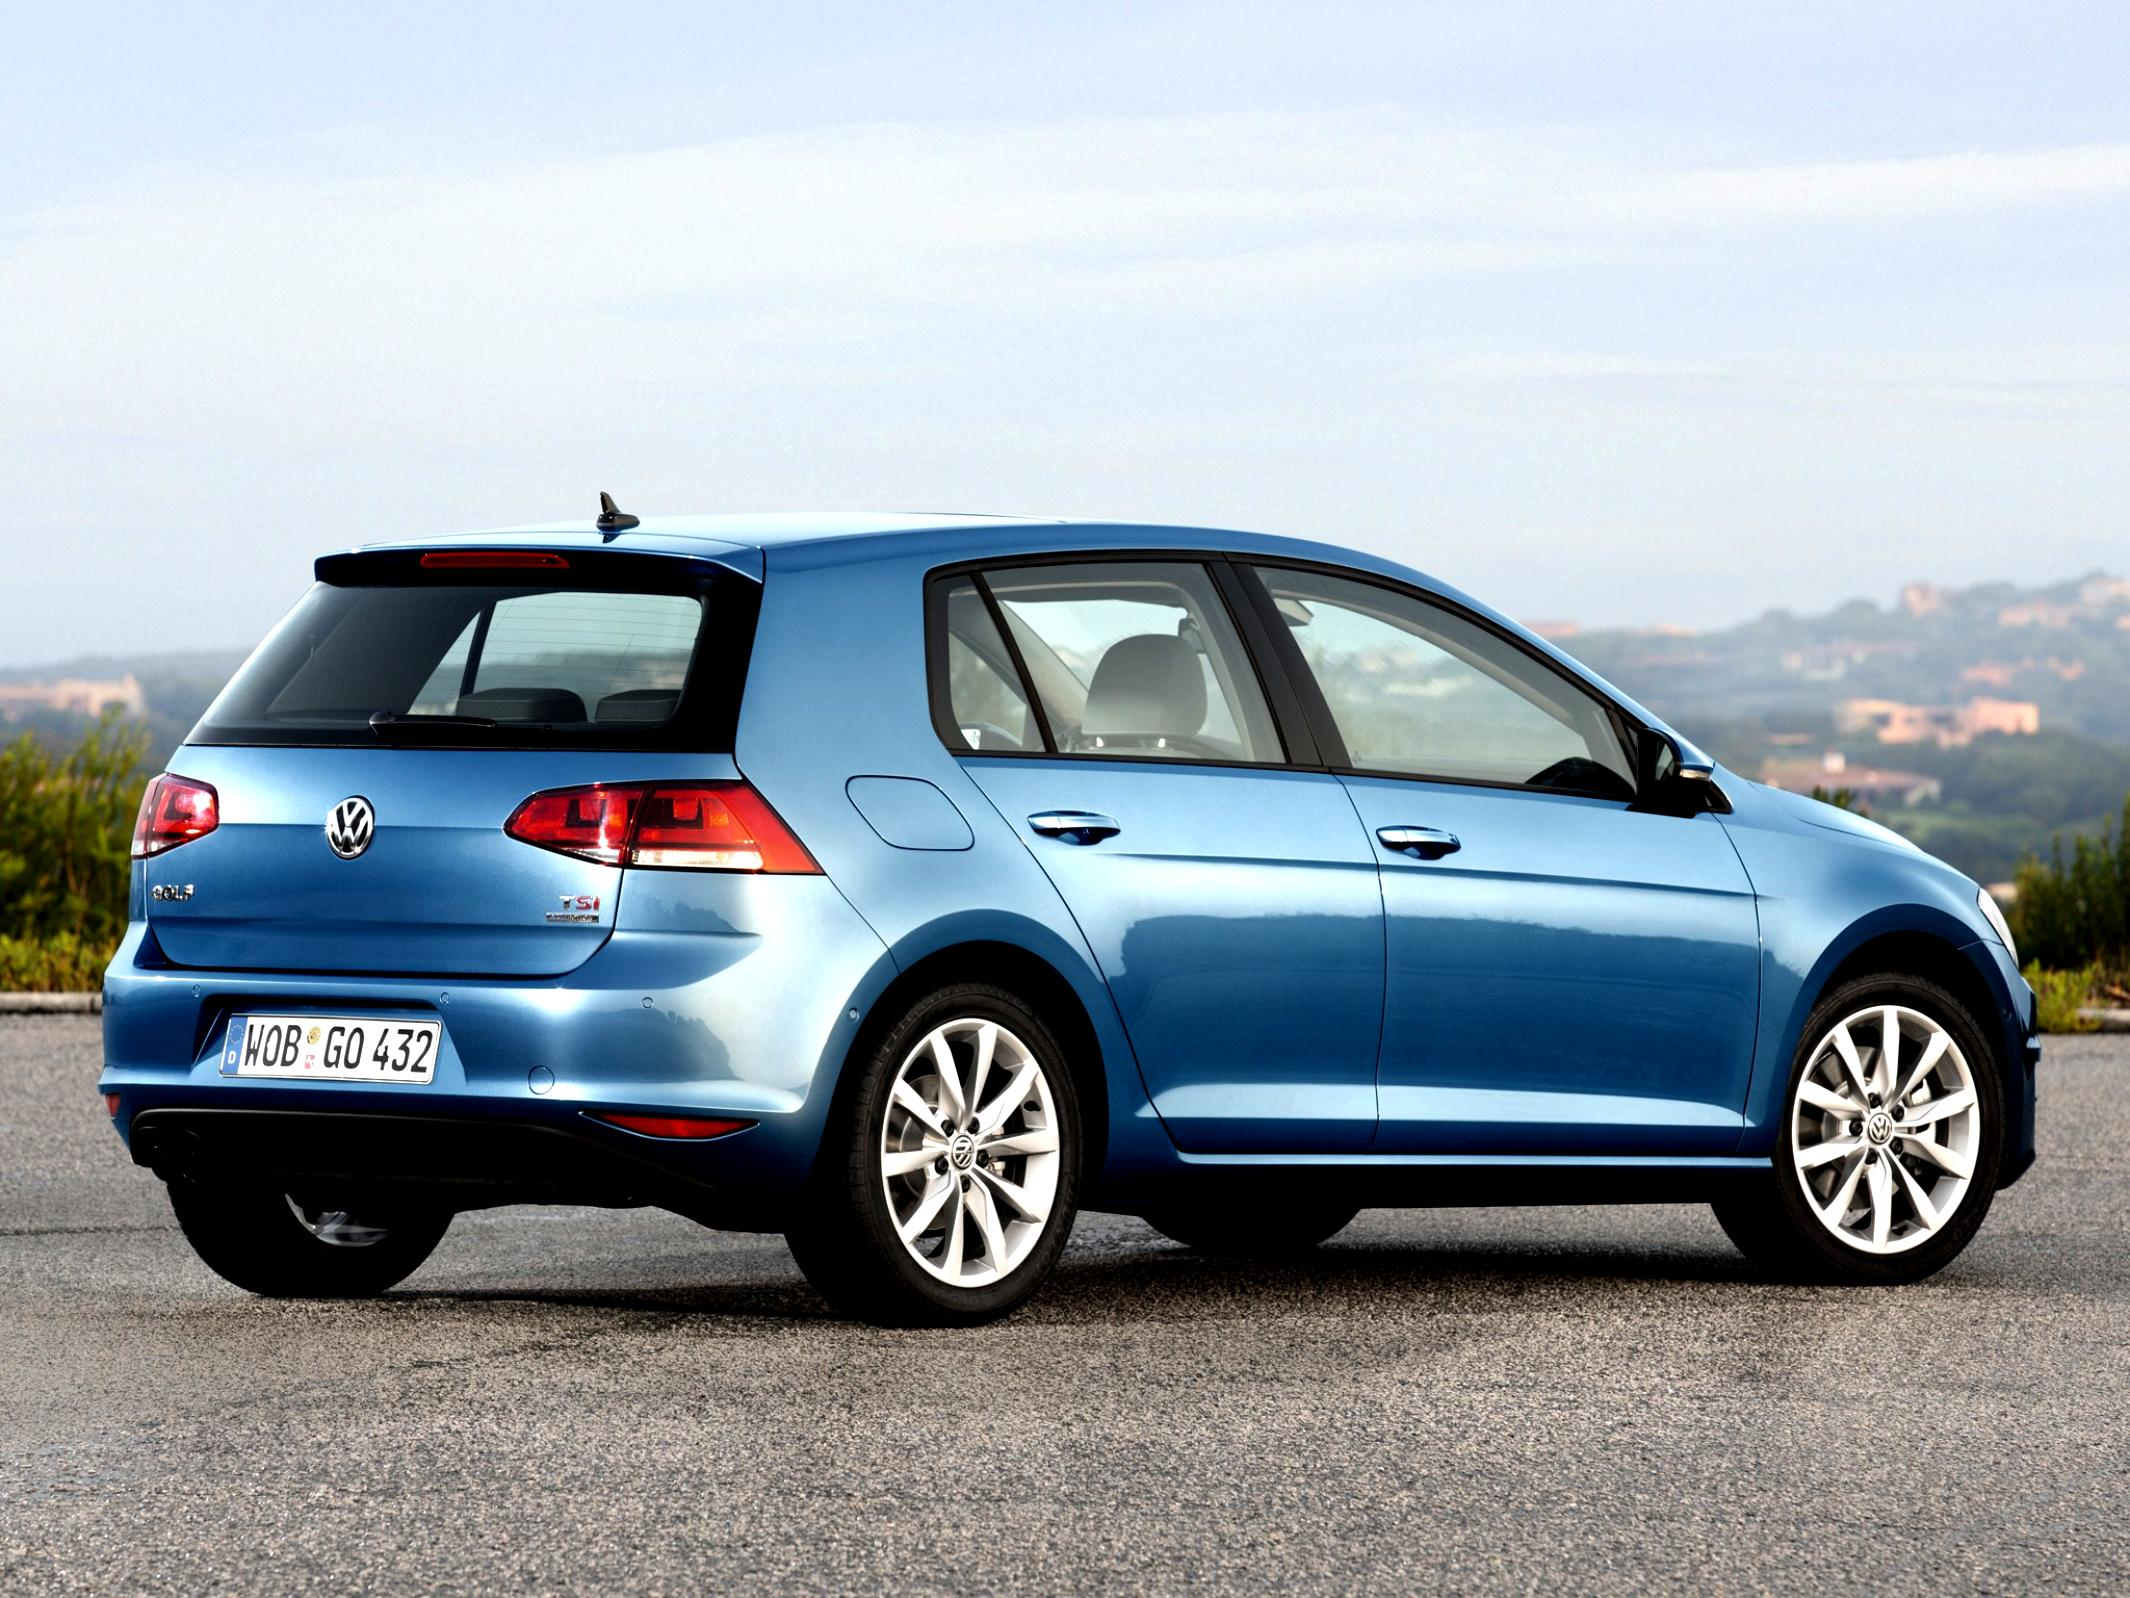 Volkswagen Golf VII 5 Doors 2012 #11